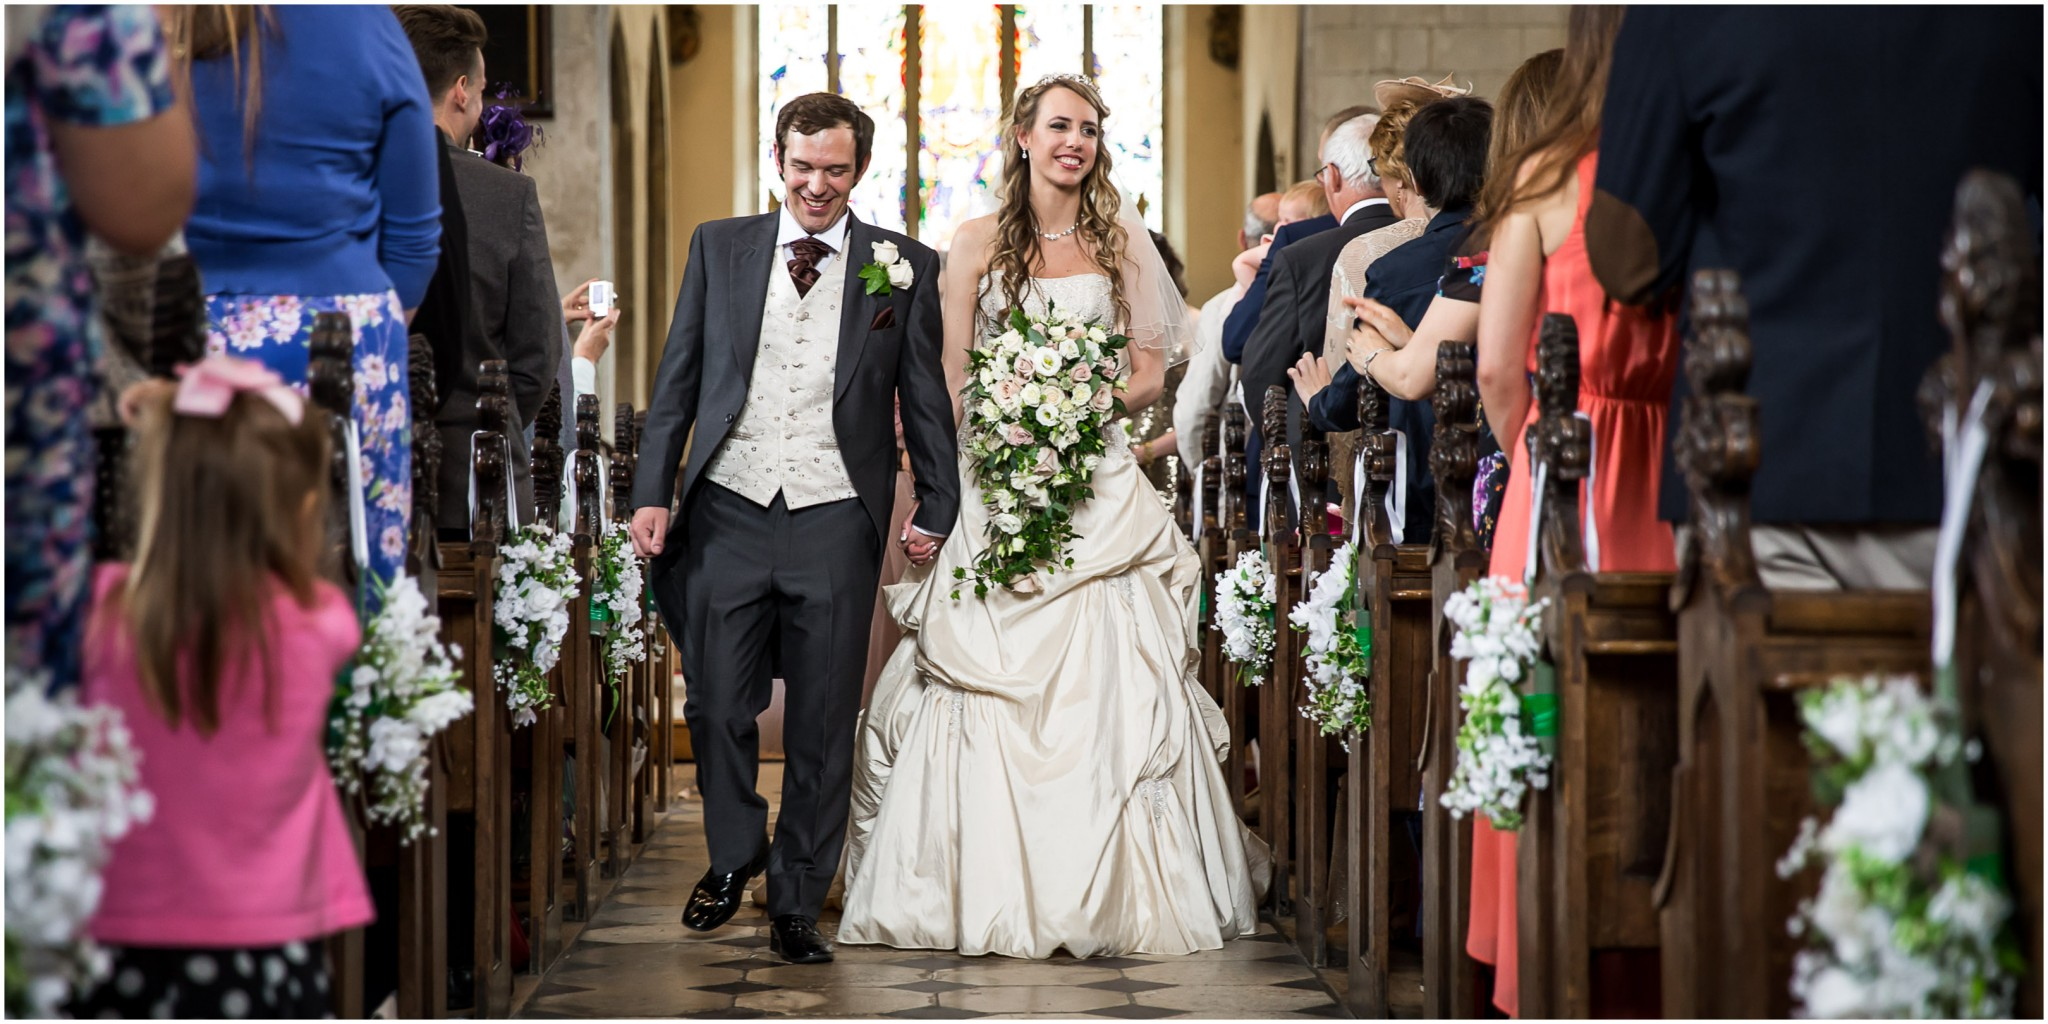 Highfield Park Wedding Photography Bride & Groom walking down the aisle